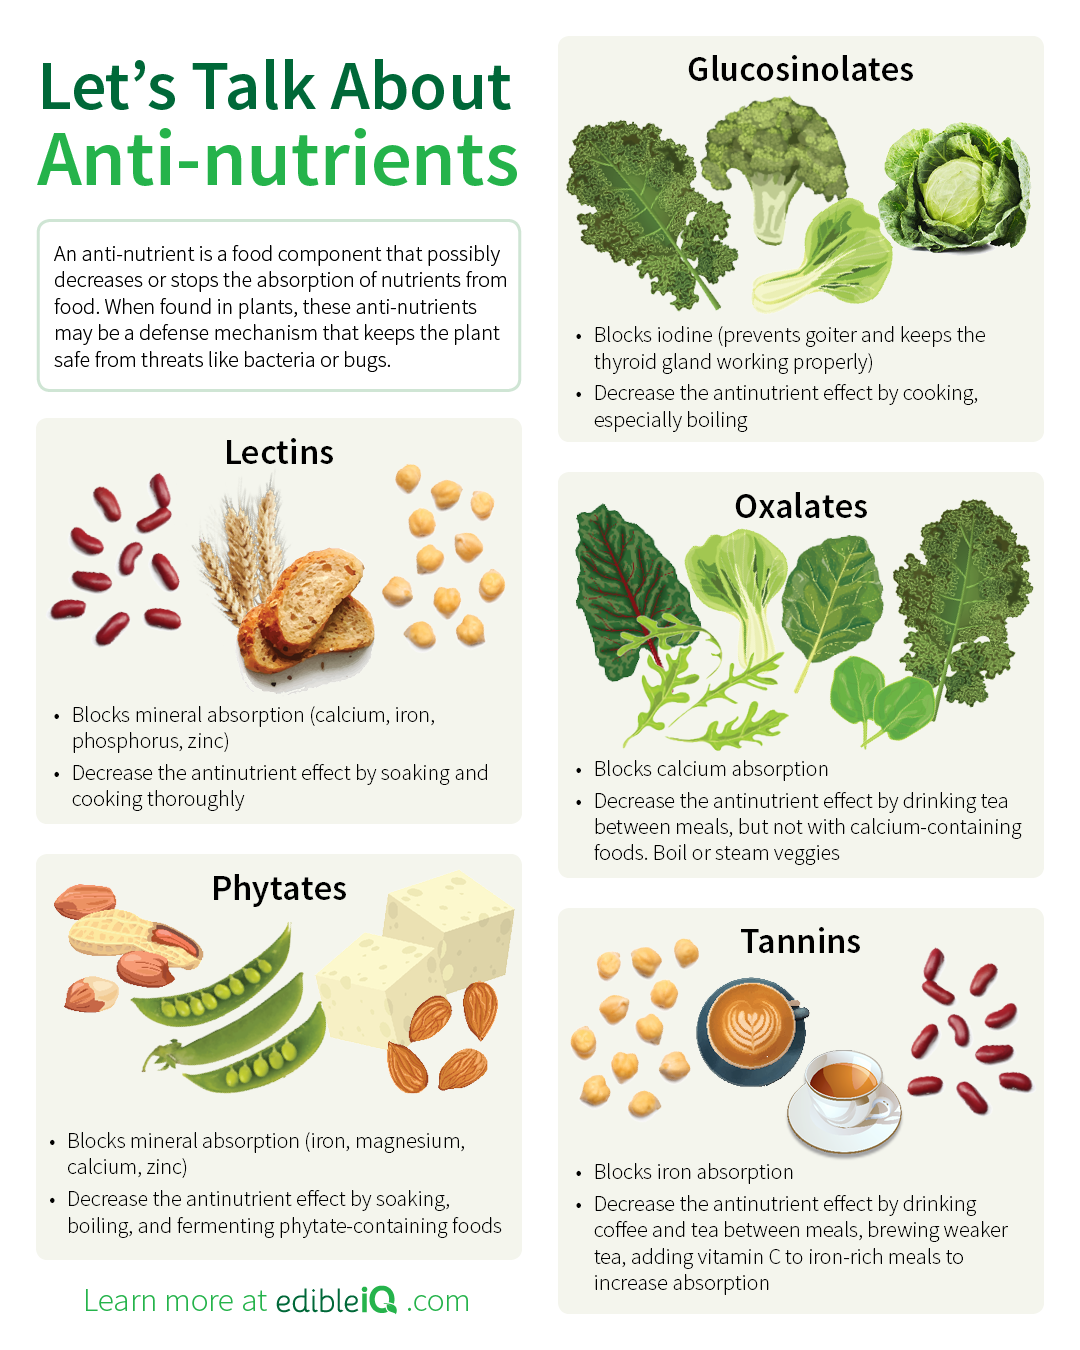 Let's Talk About Anti-nutrients